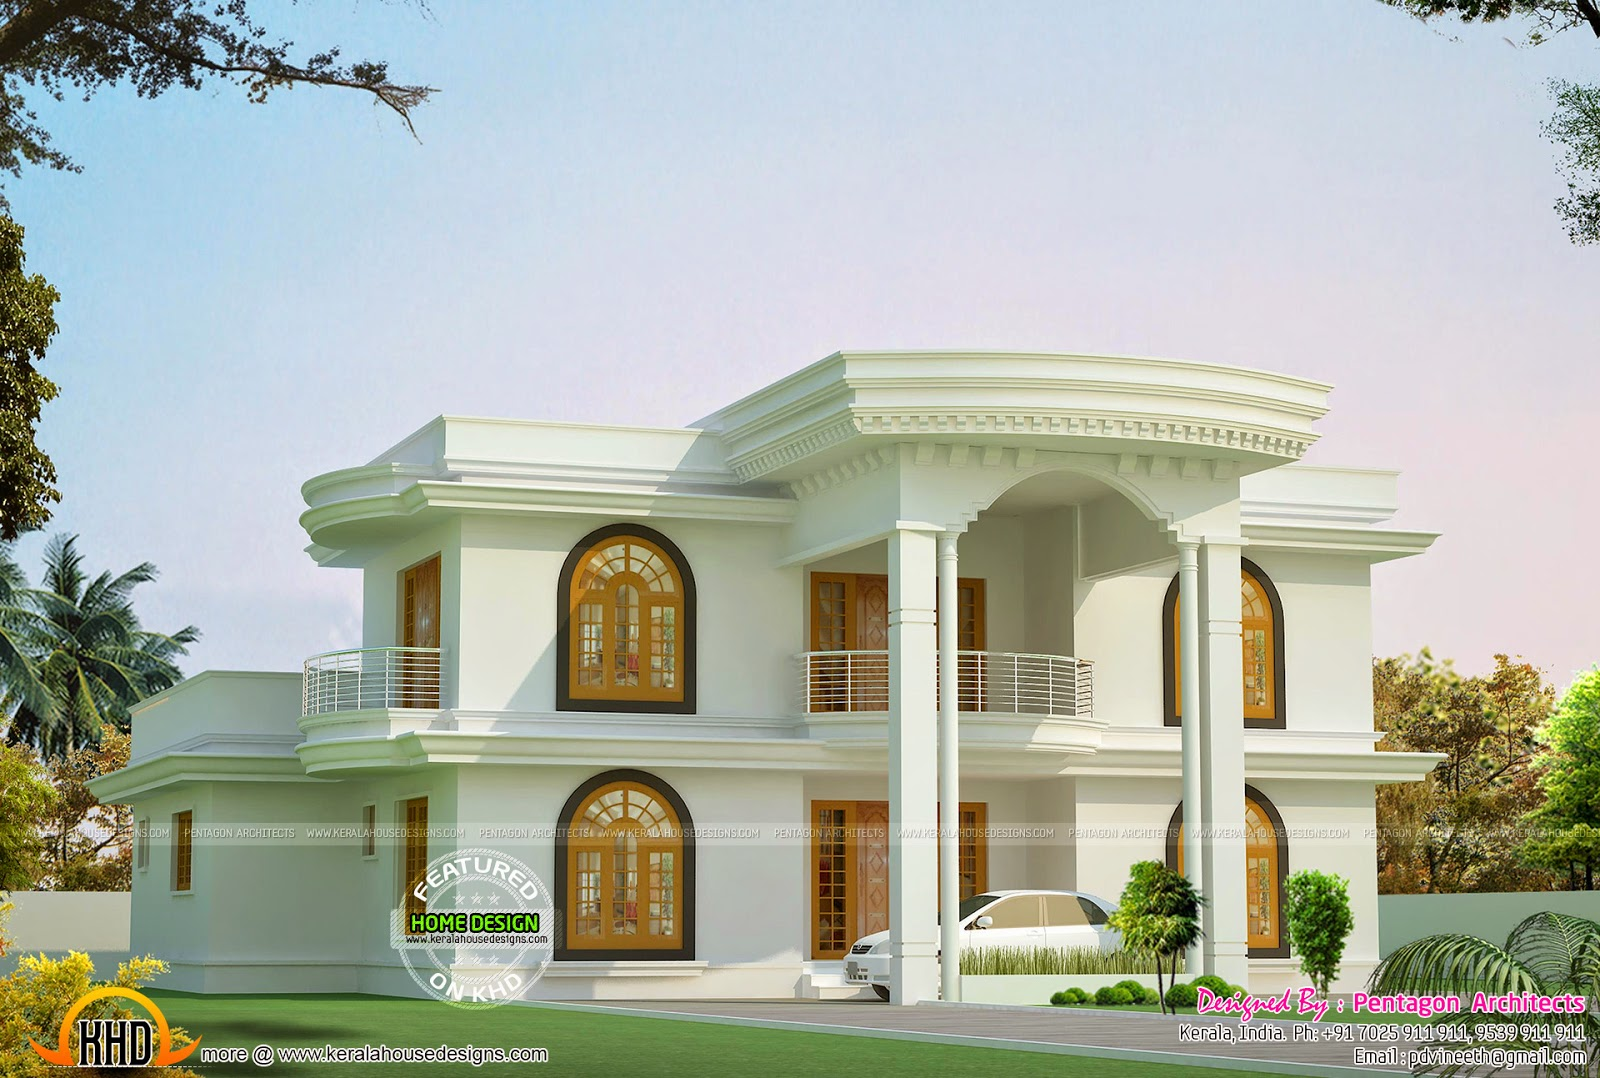 kerala house plans 02 - 17+ Small House Plans In Kerala With Photos  Images